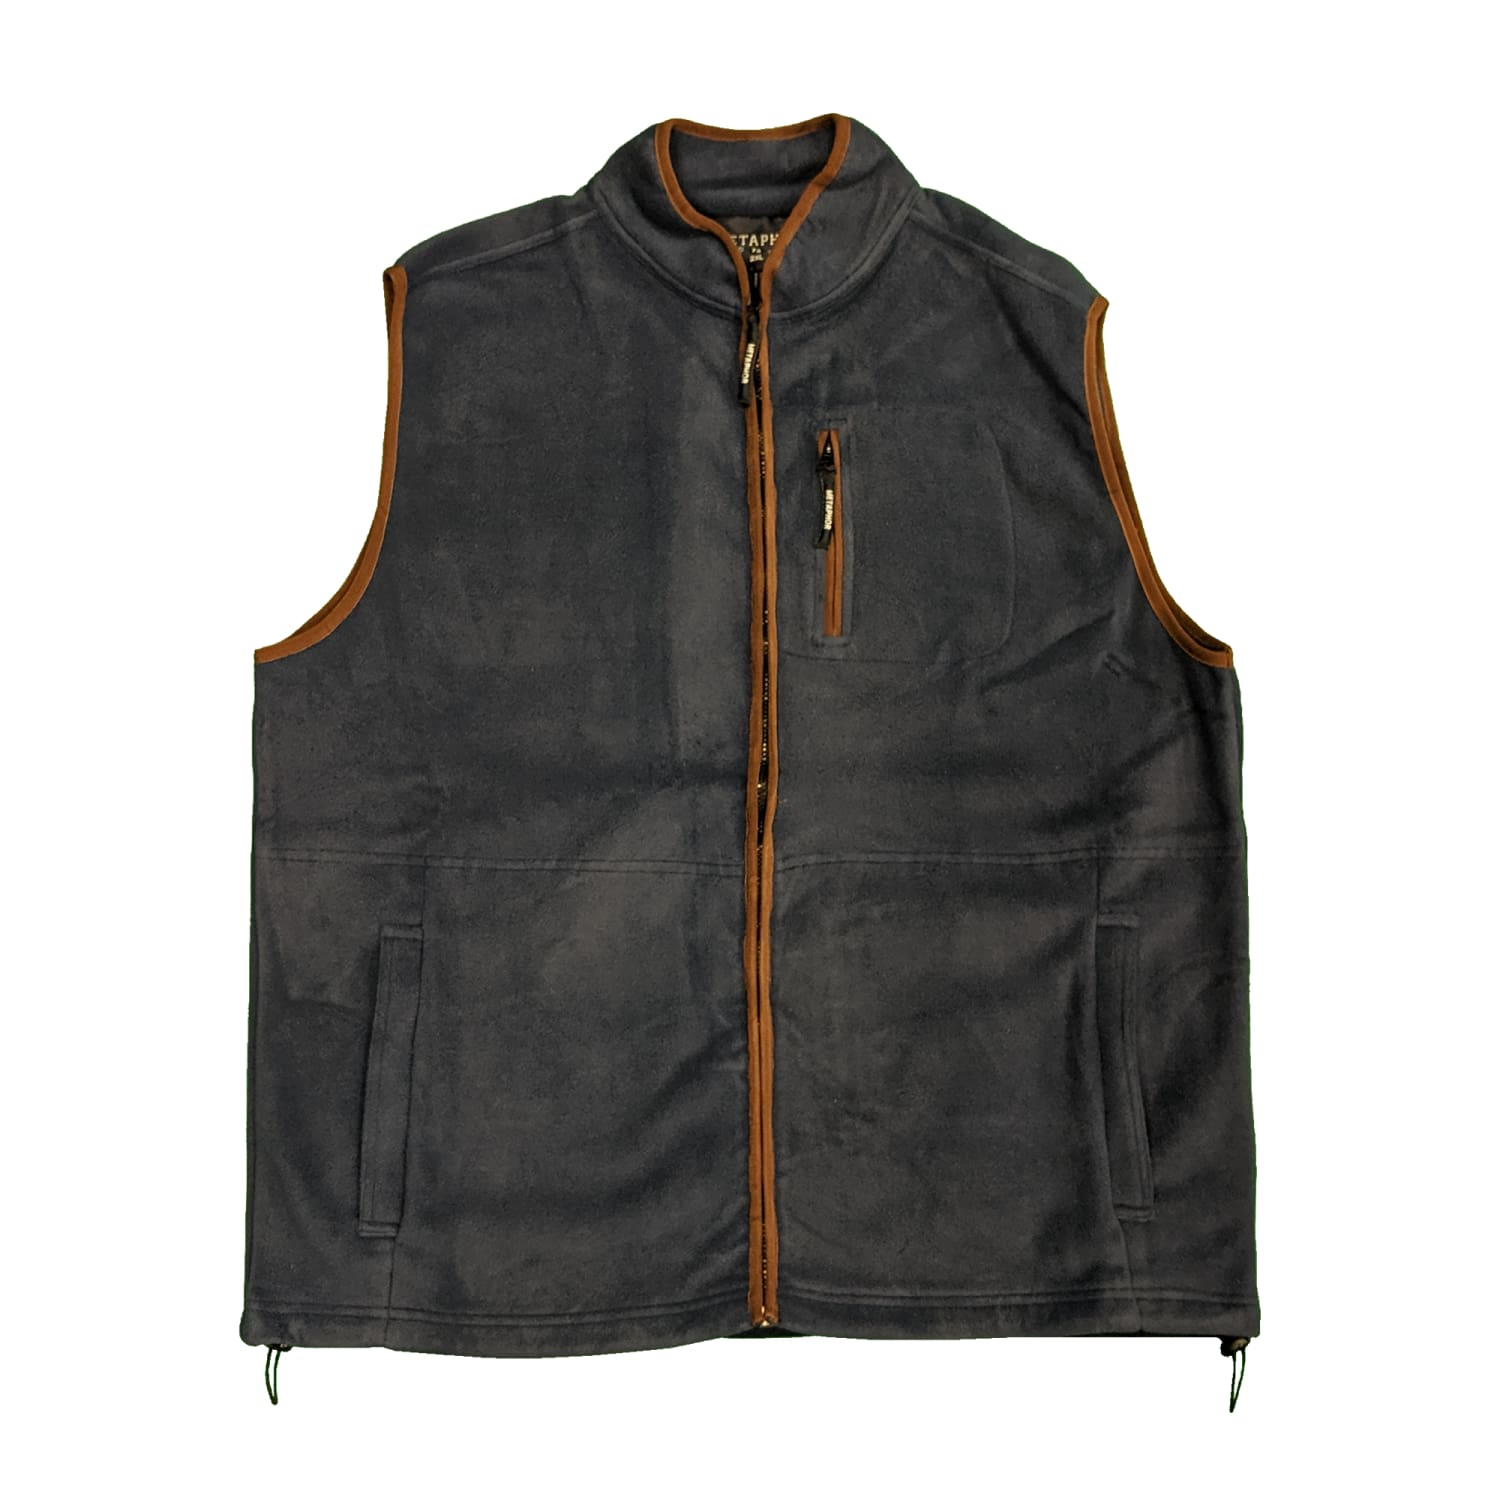 Metaphor Full Zip Fleece Gilet - 01557 - Navy 1